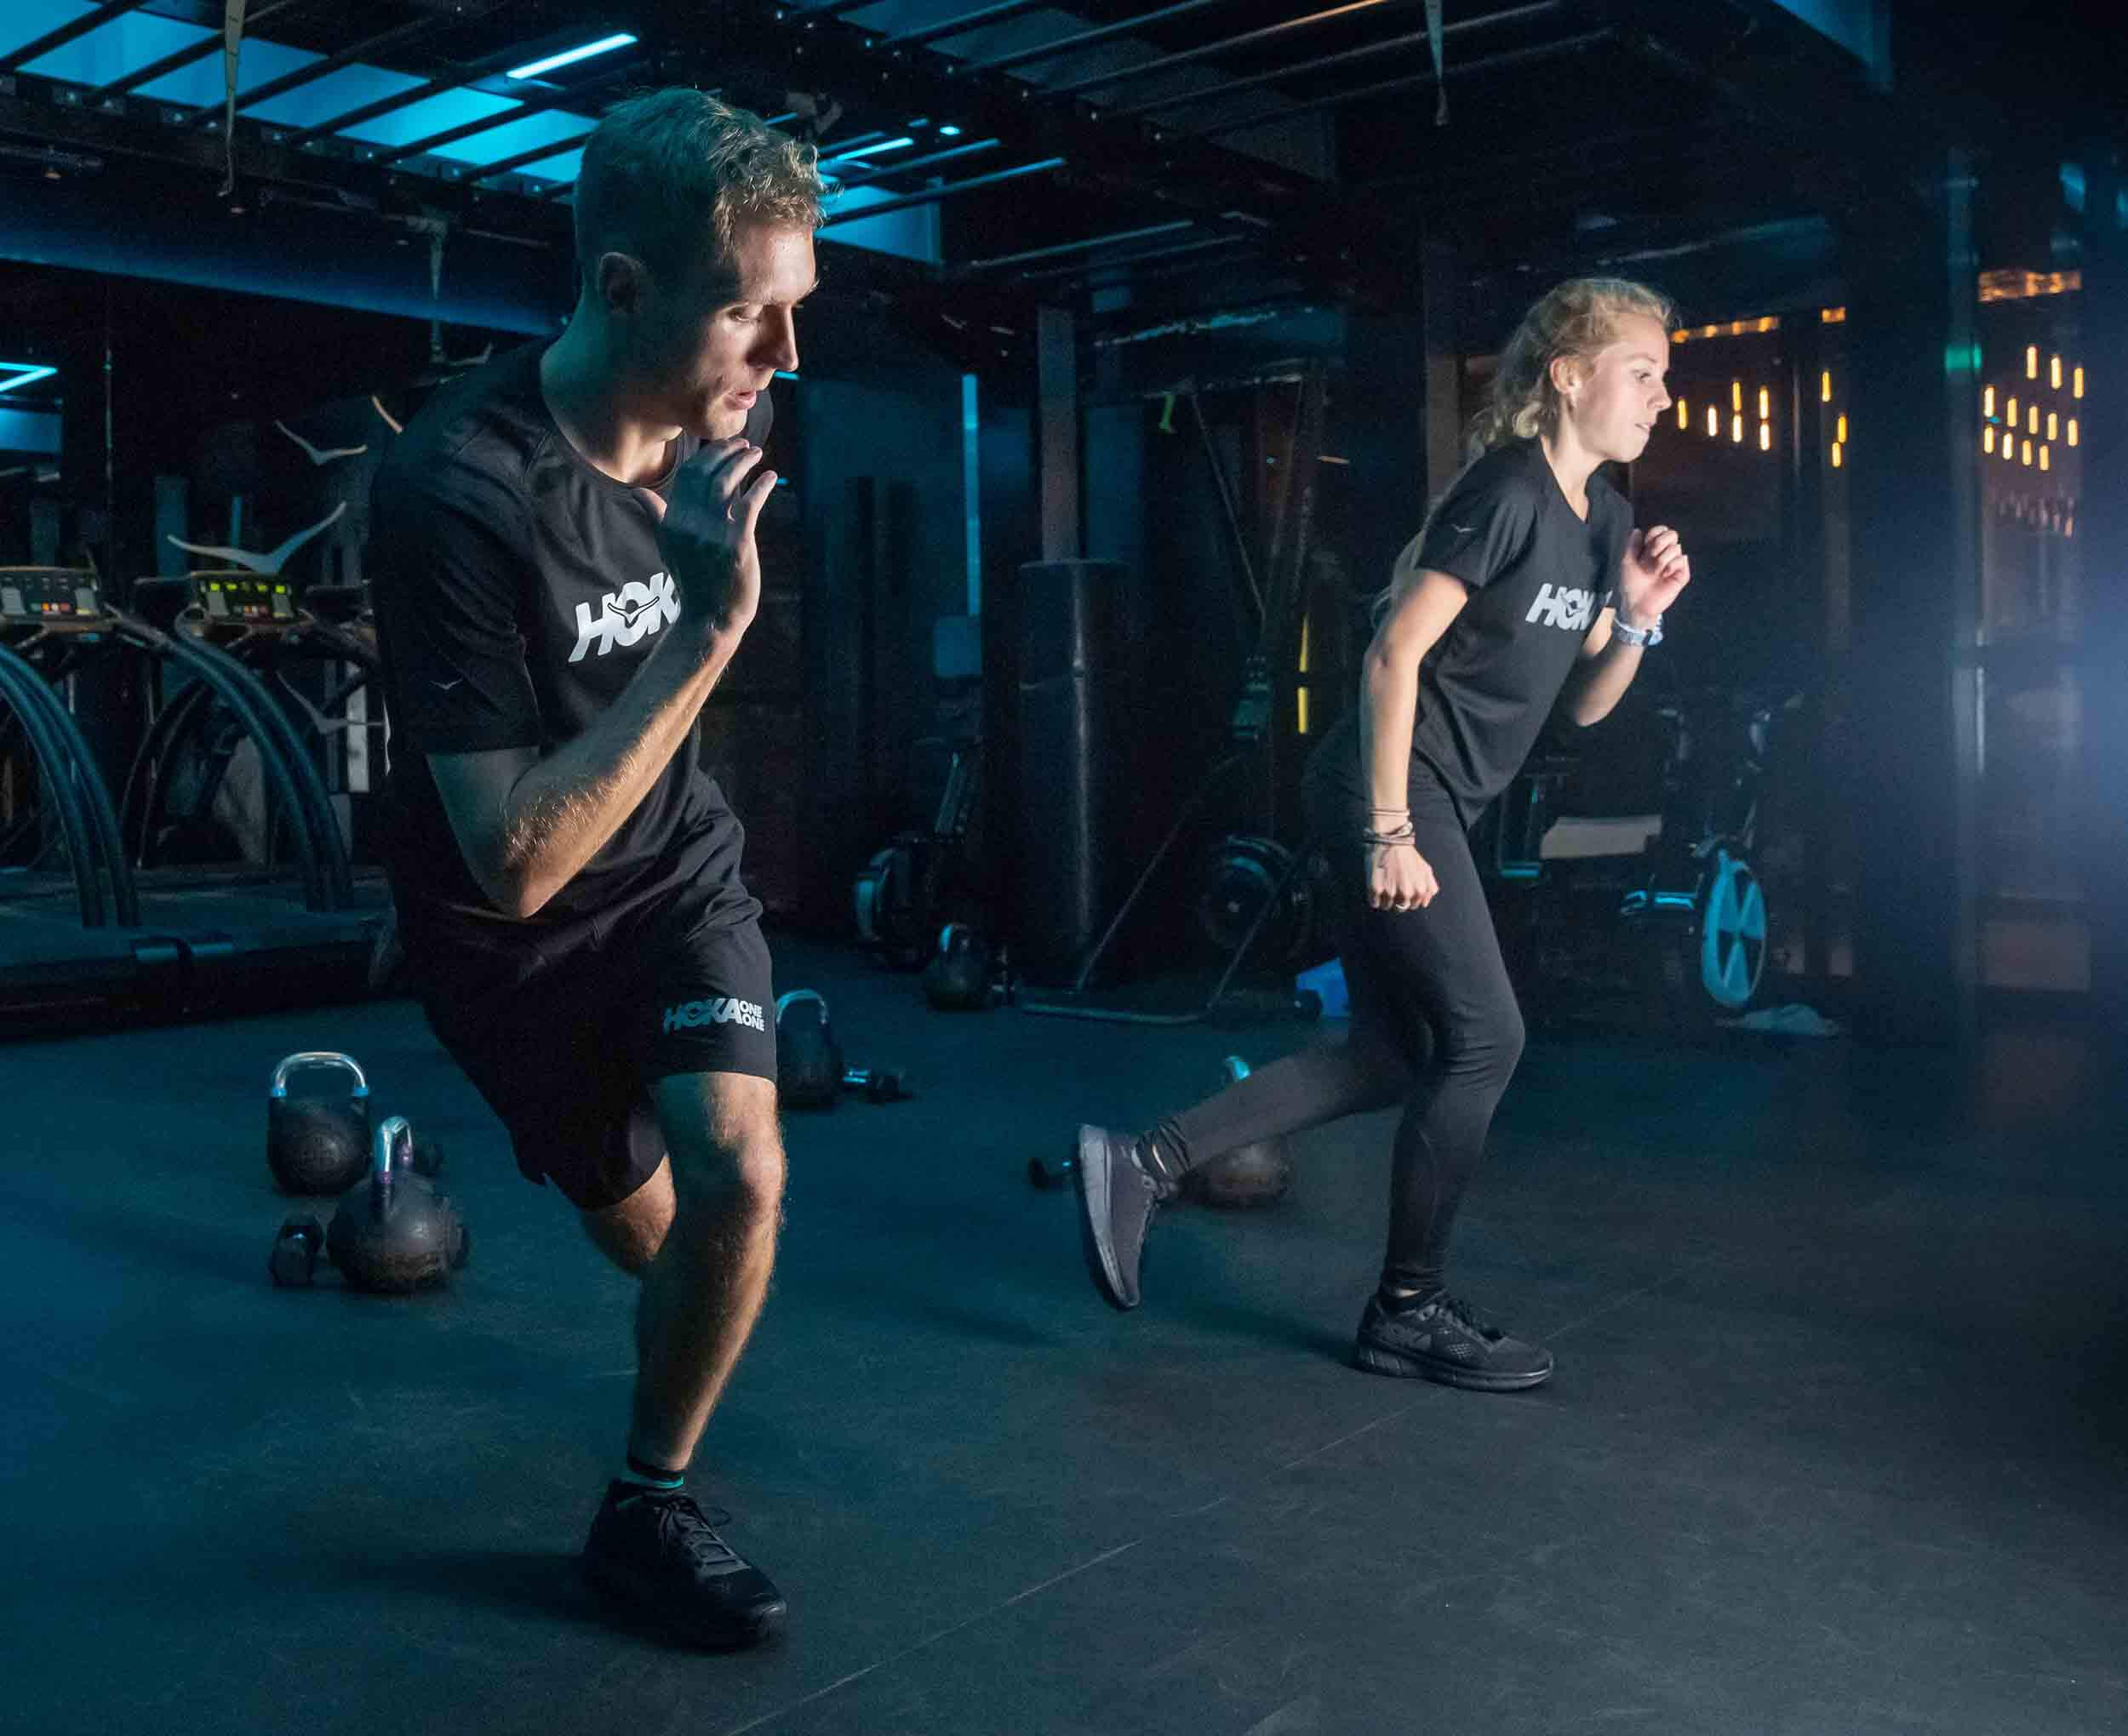 Participants do exercises at the HOKA Fly at Night event in London